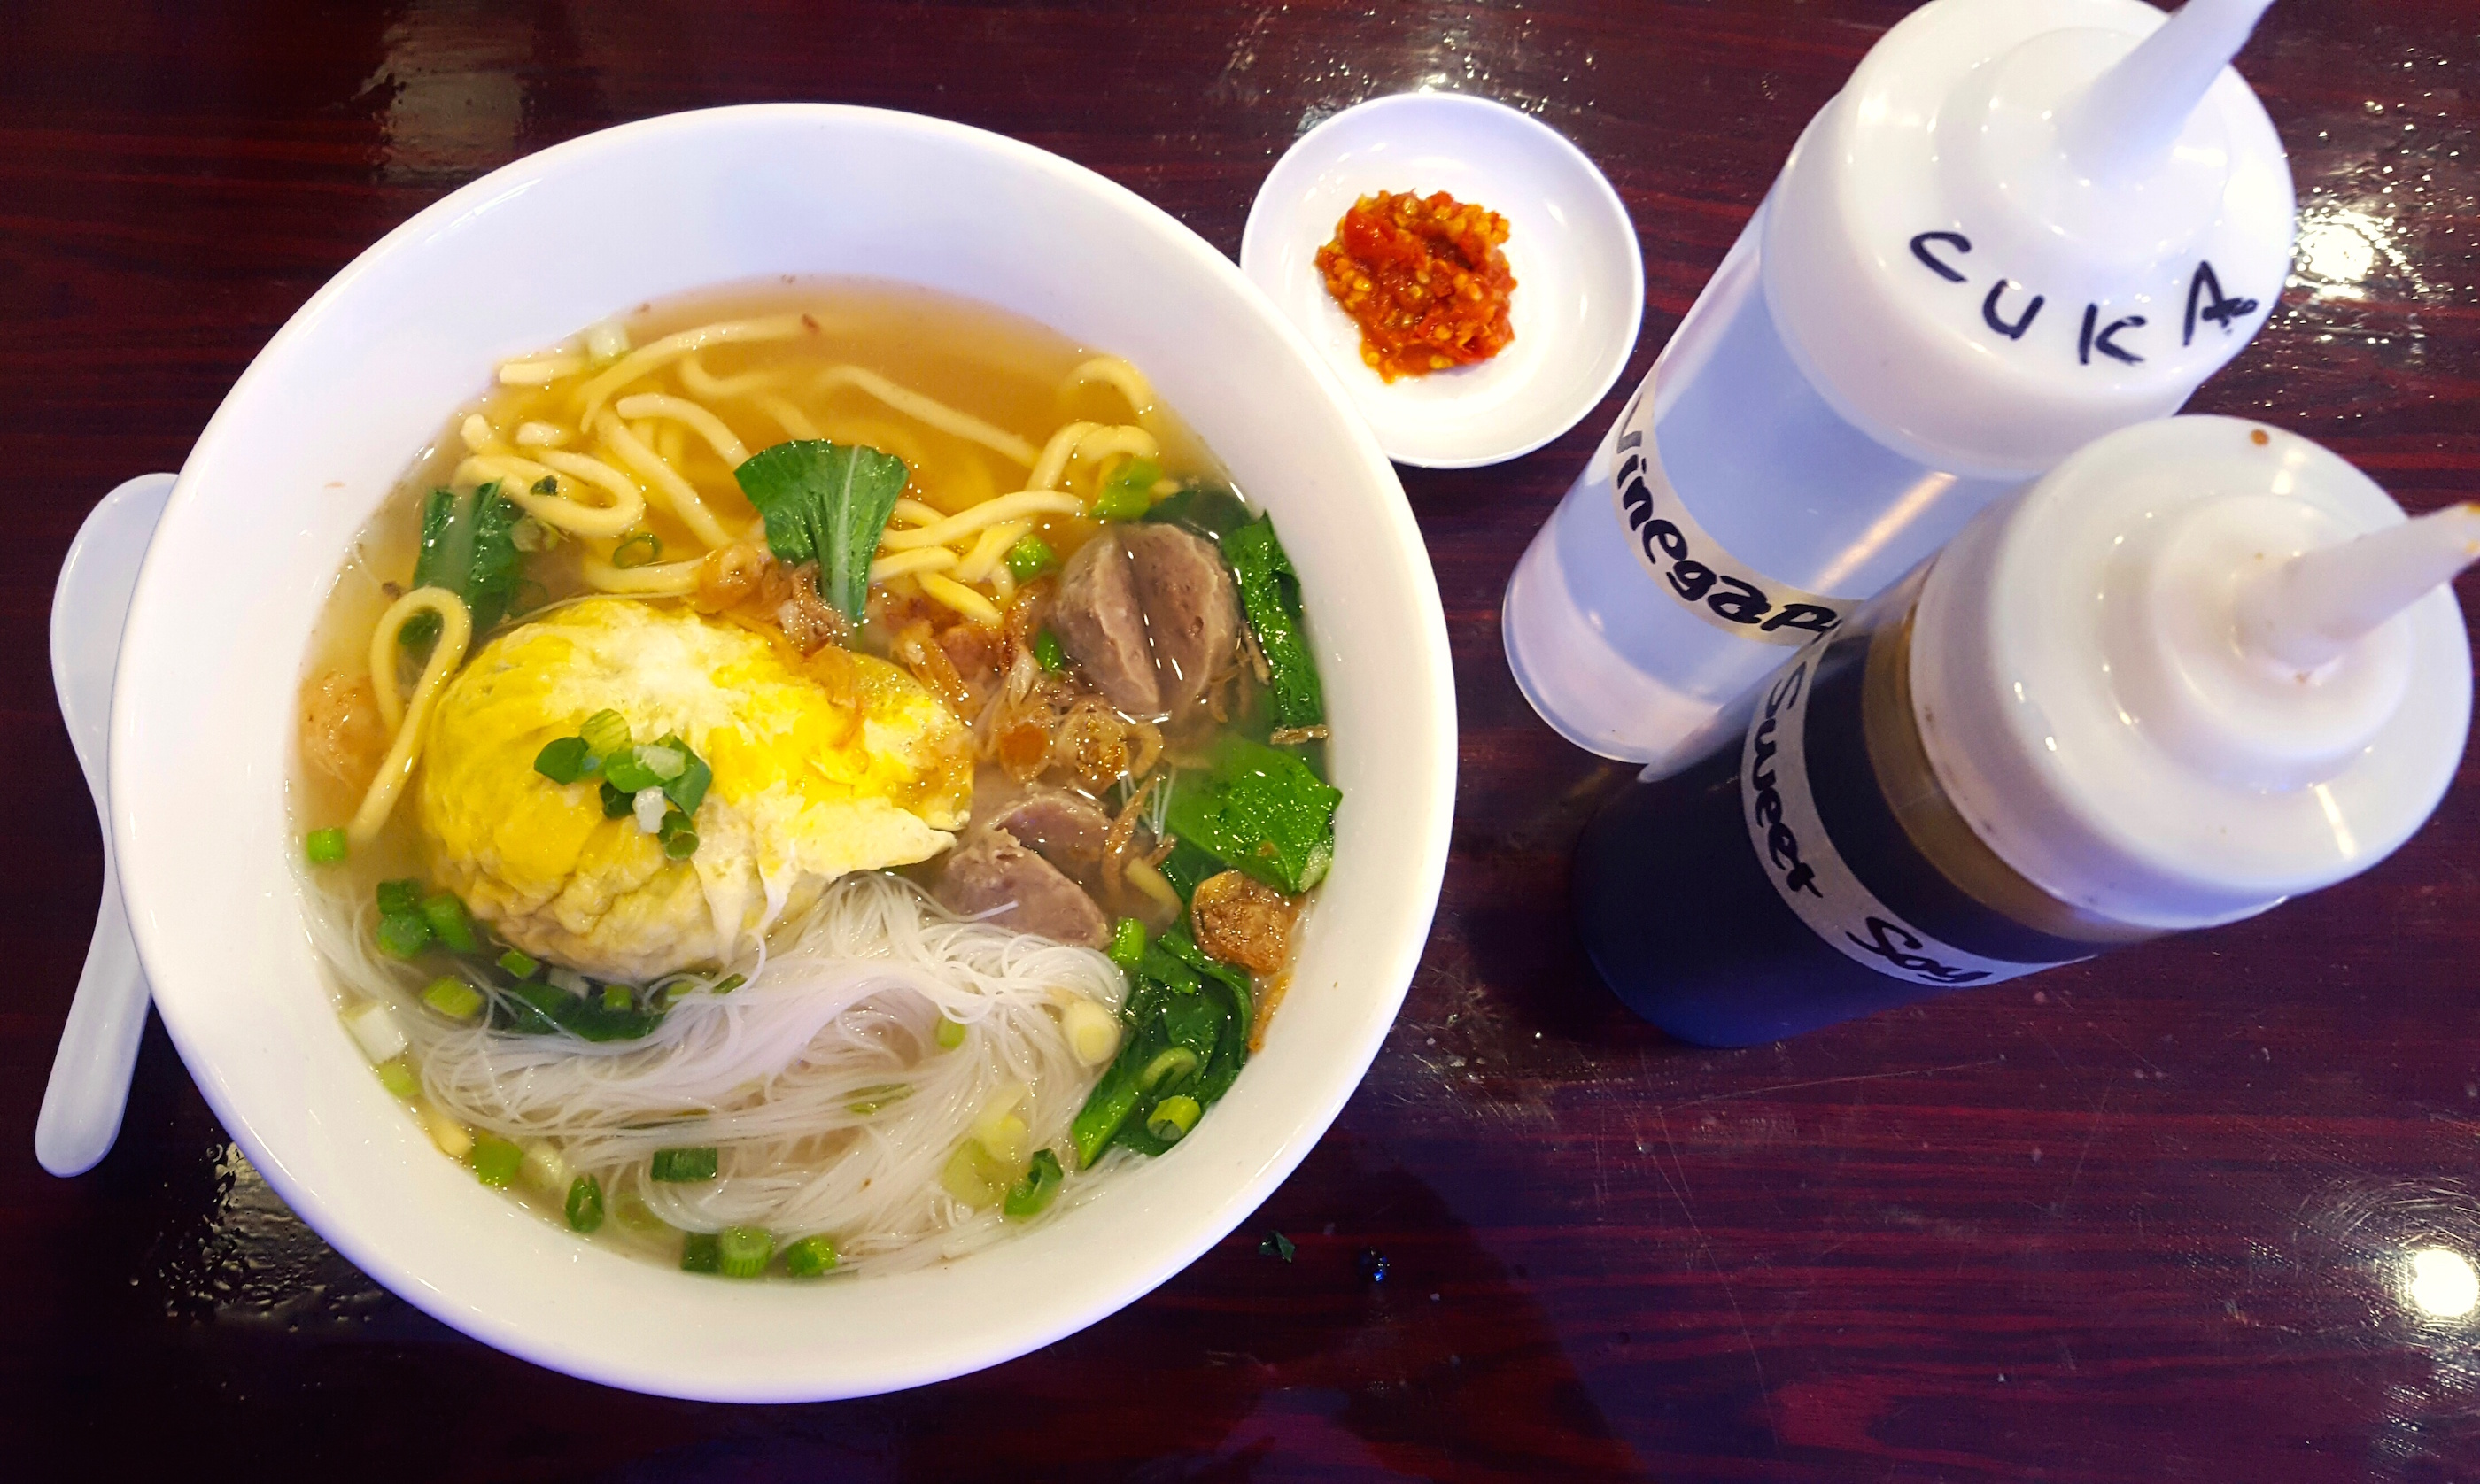 Bakso kabut features a giant meatball shrouded in a fried egg.